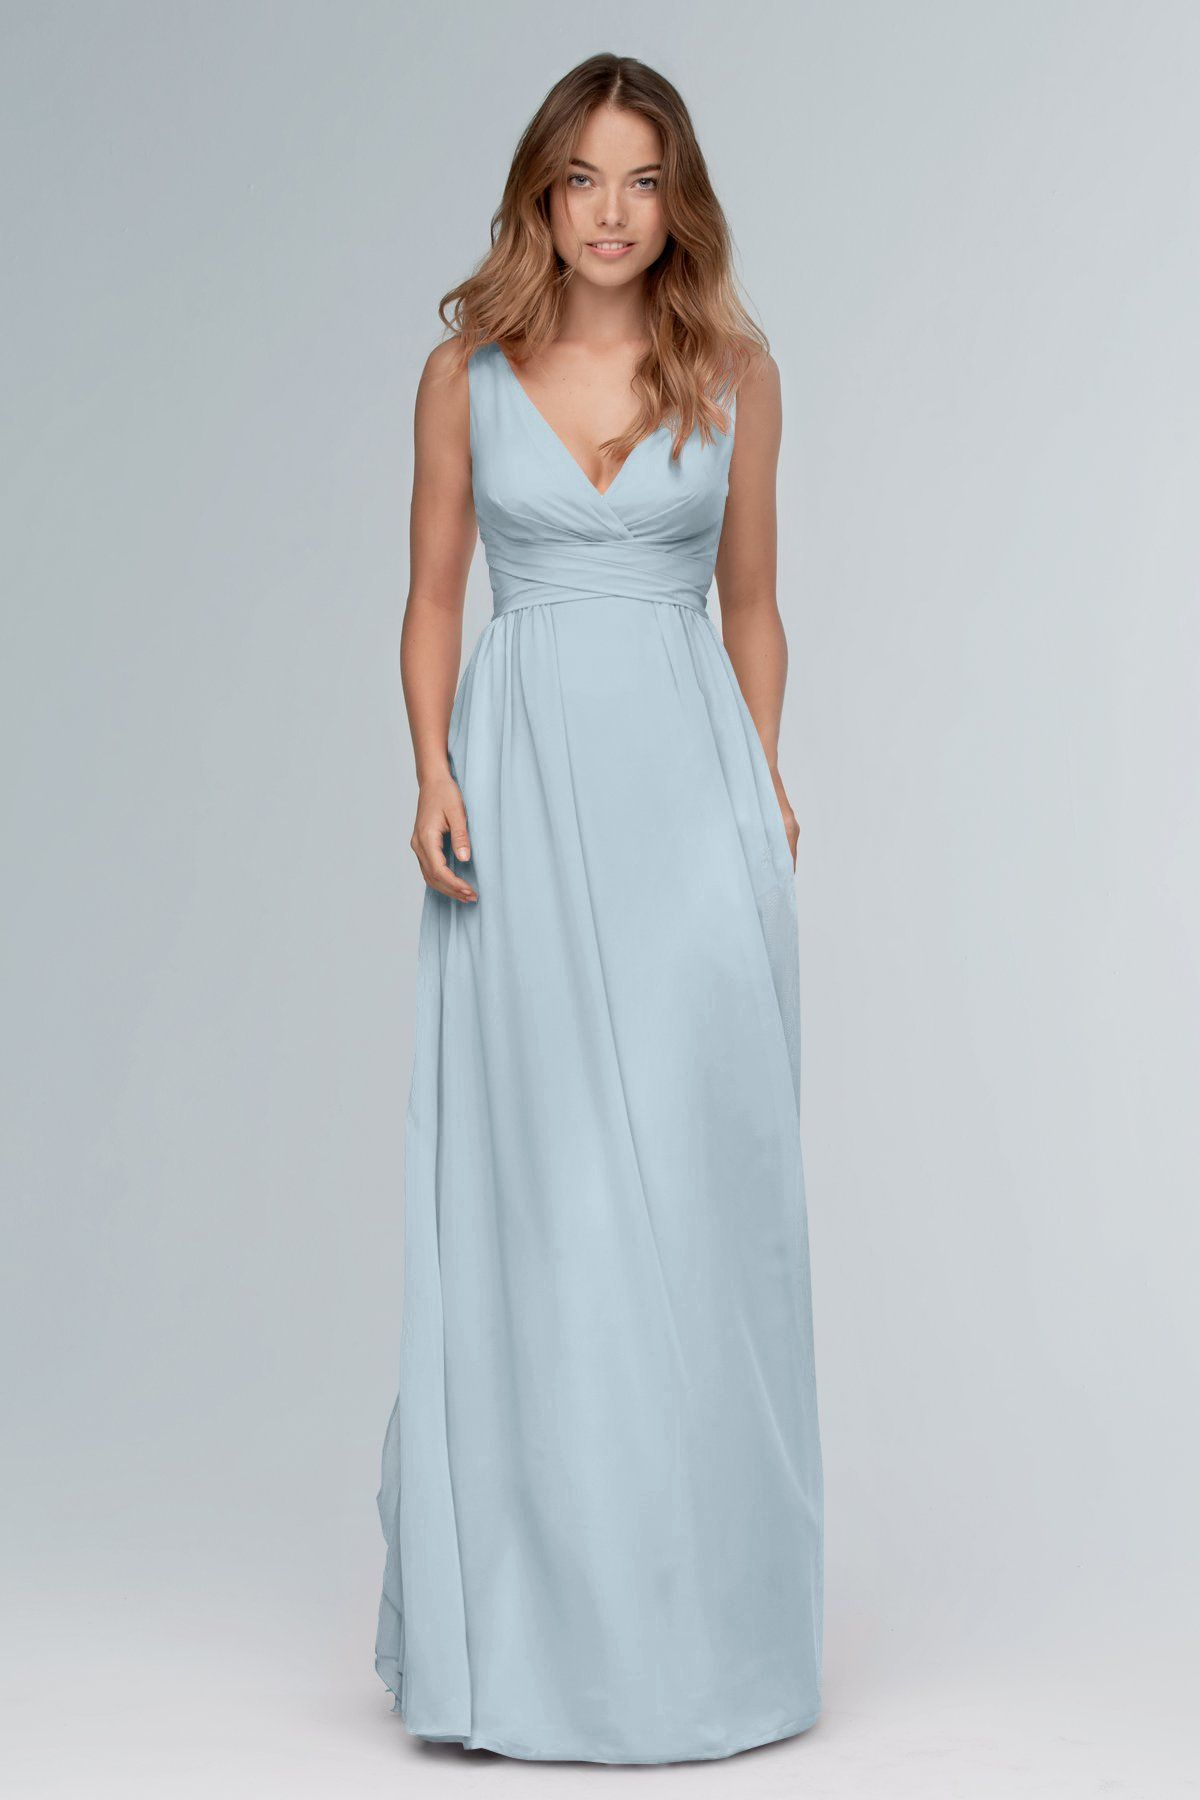 Fantastic Dress Of Marriage Party Component - All Wedding Dresses ...